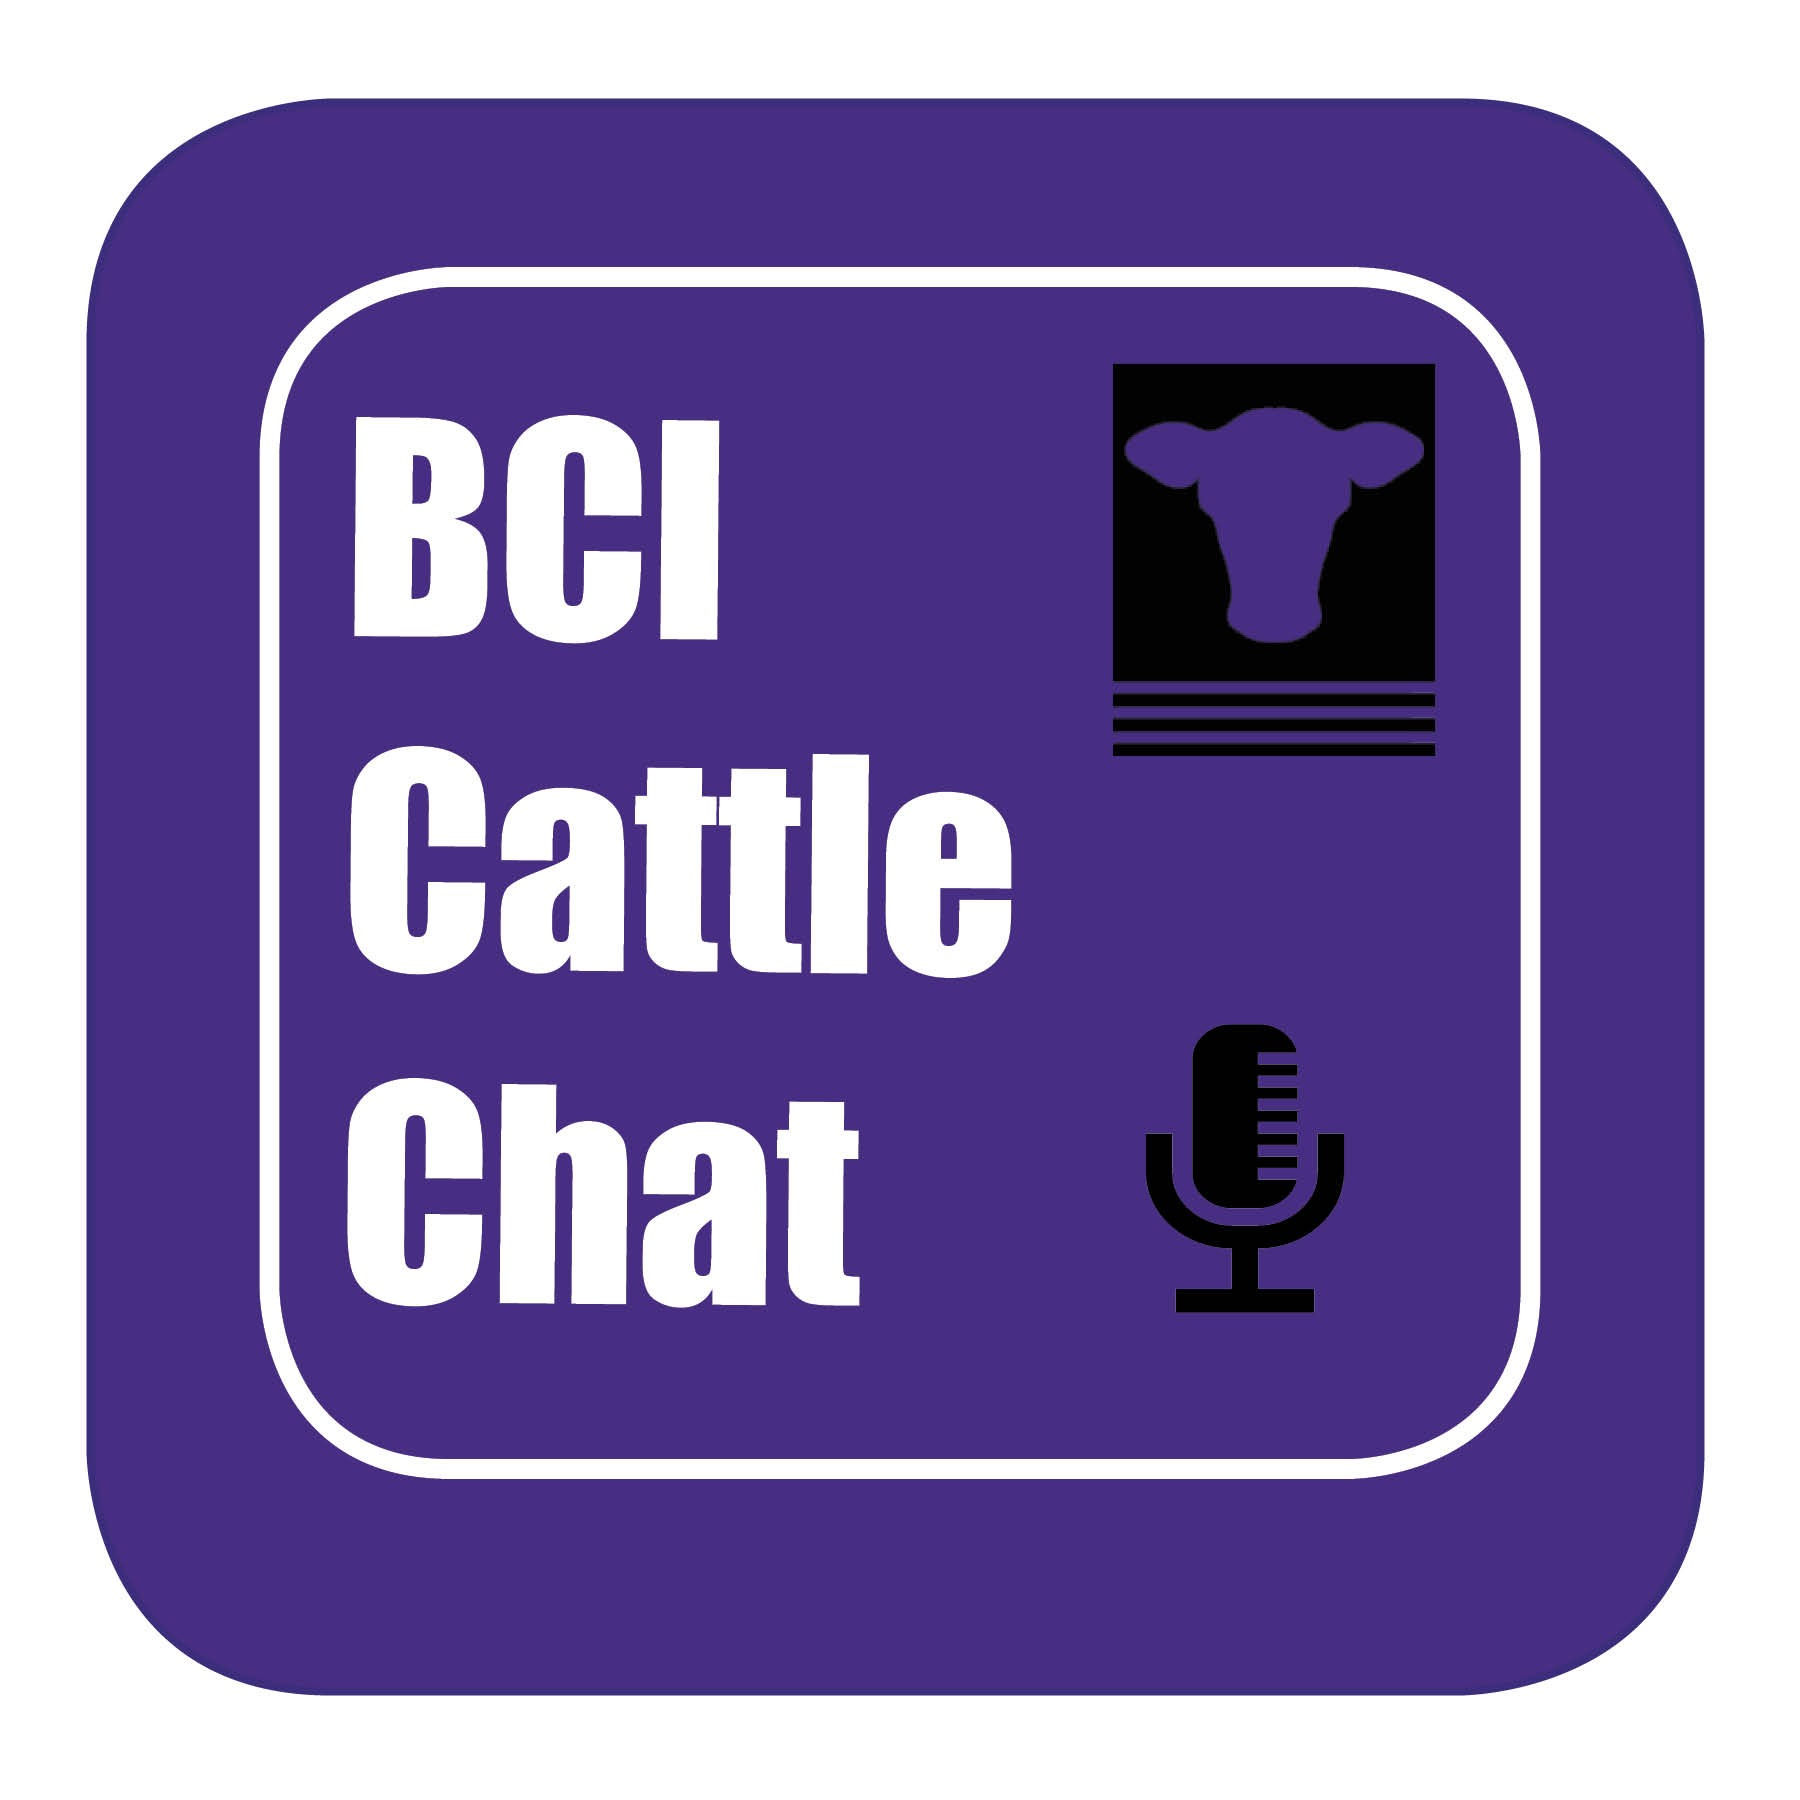 BCI Cattle Chat - Episode 35